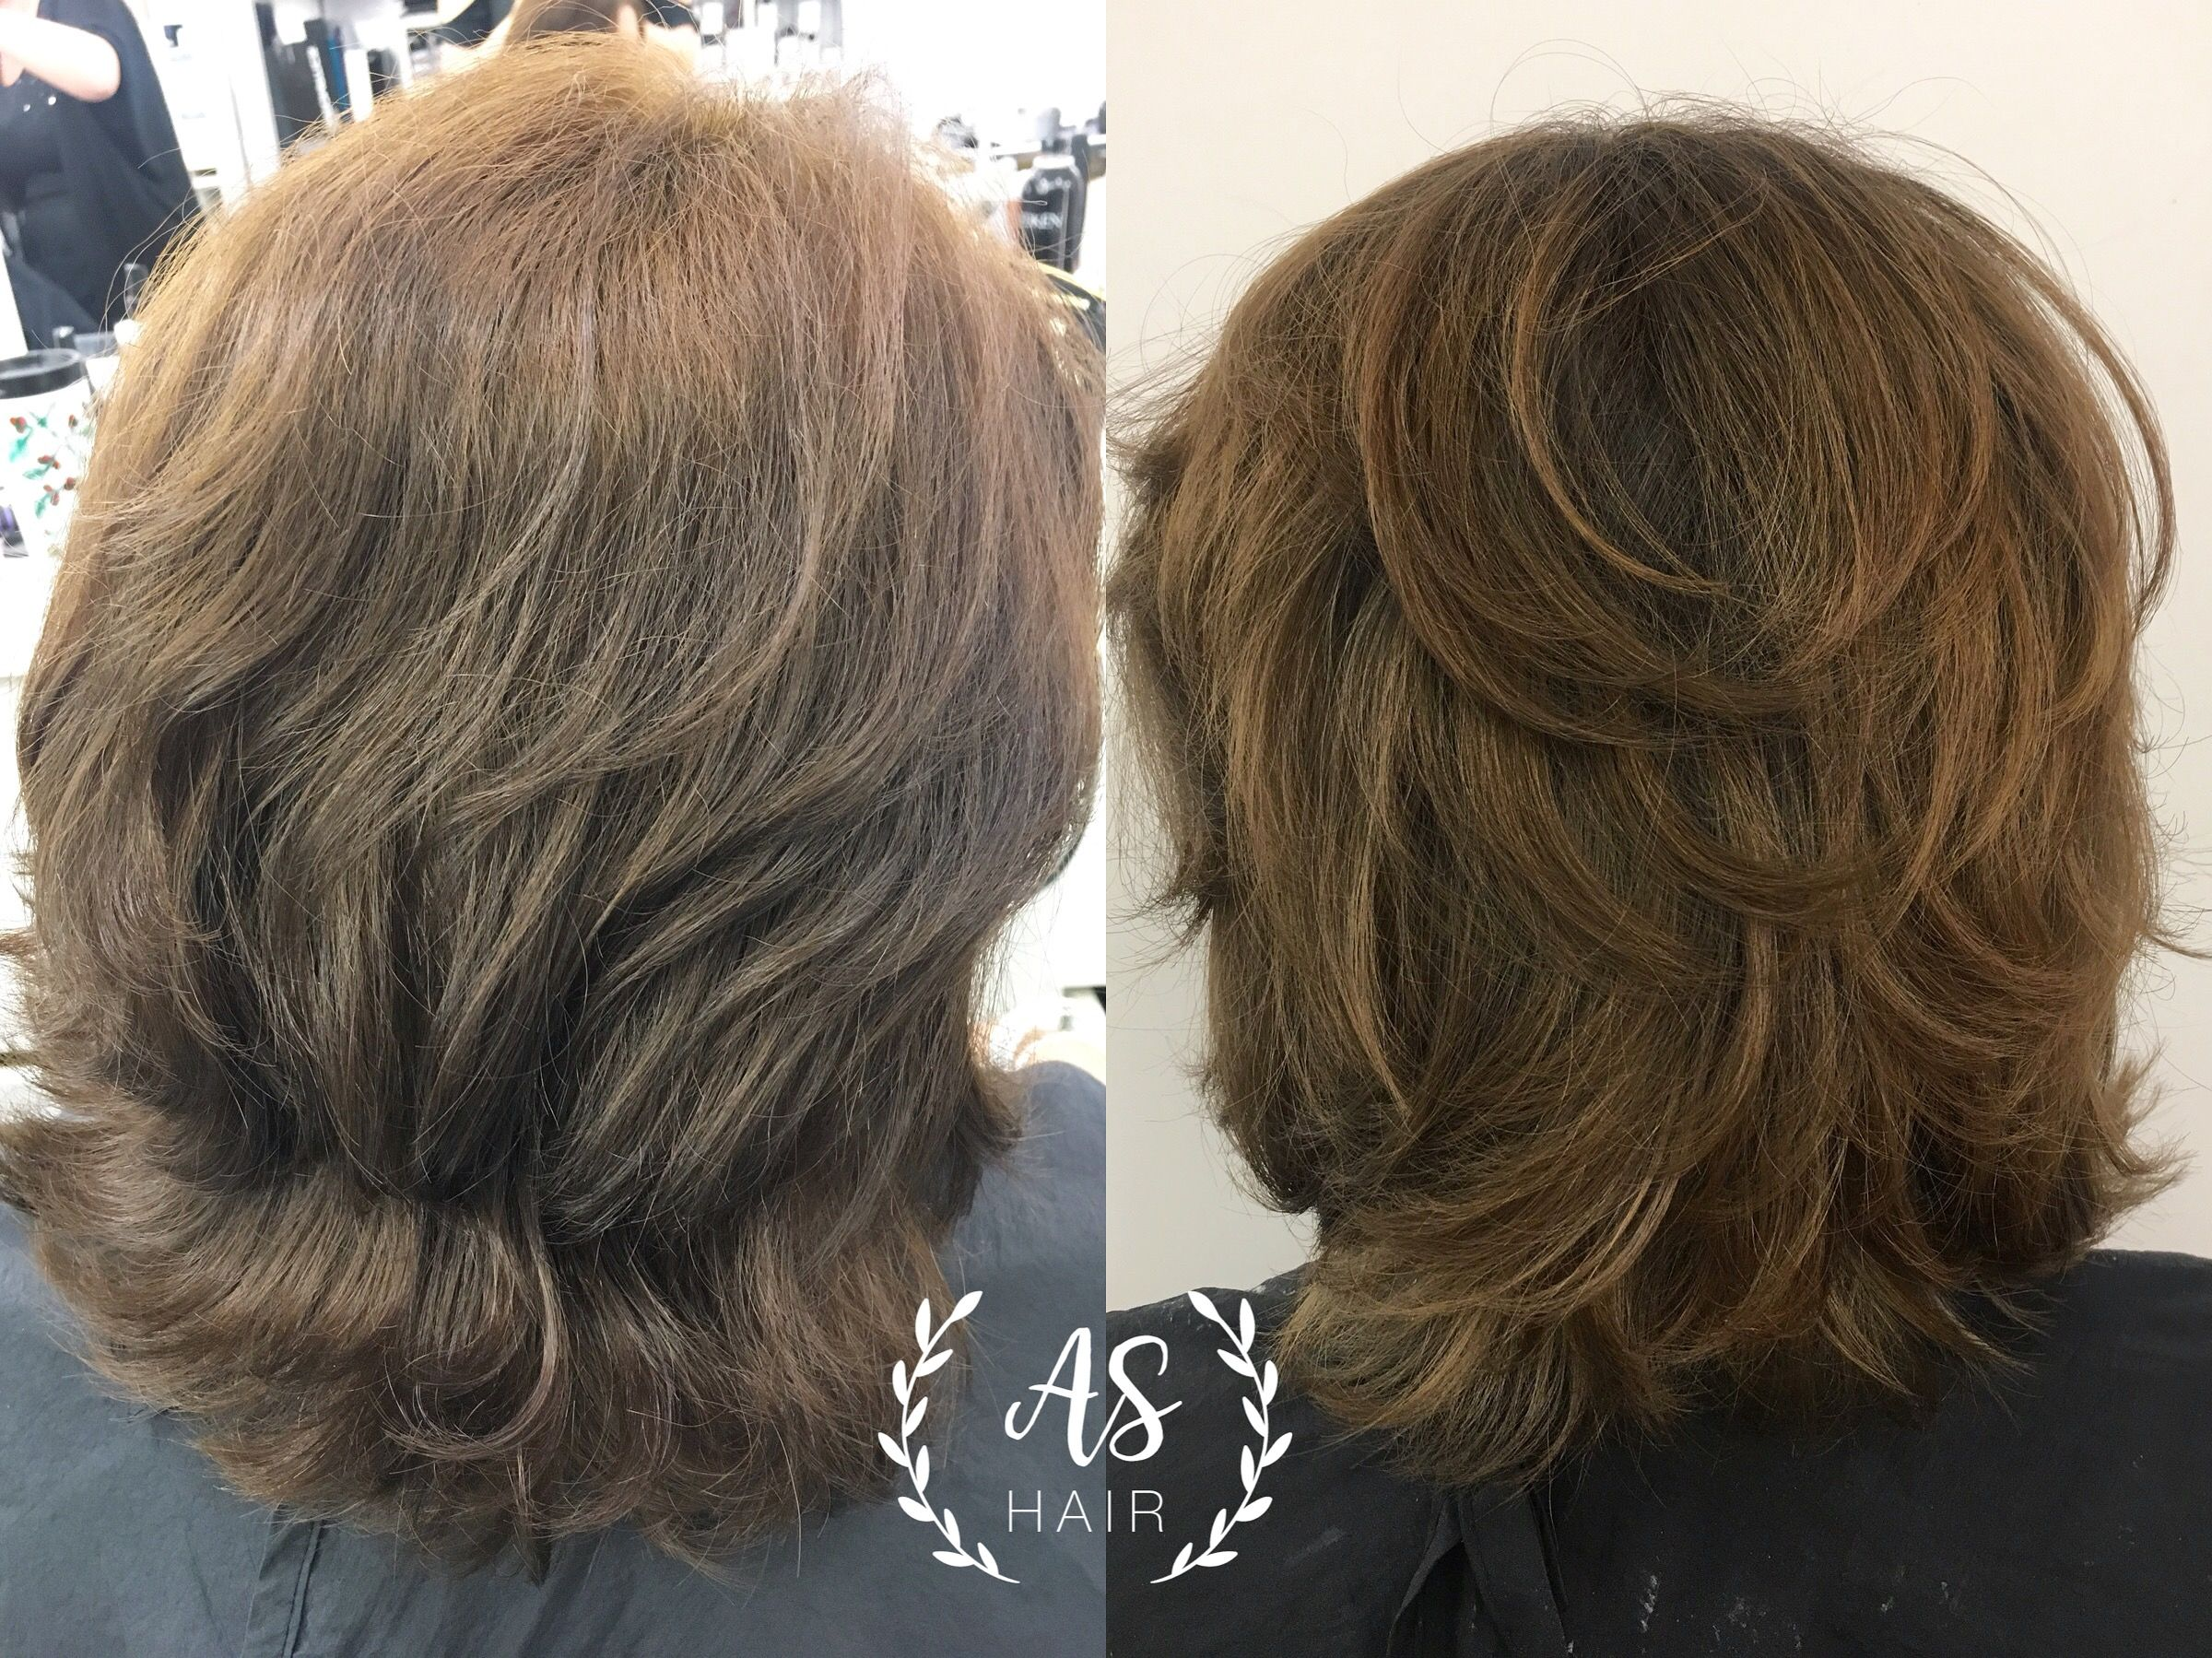 Before / After Call (585)2921250 to reserve your future